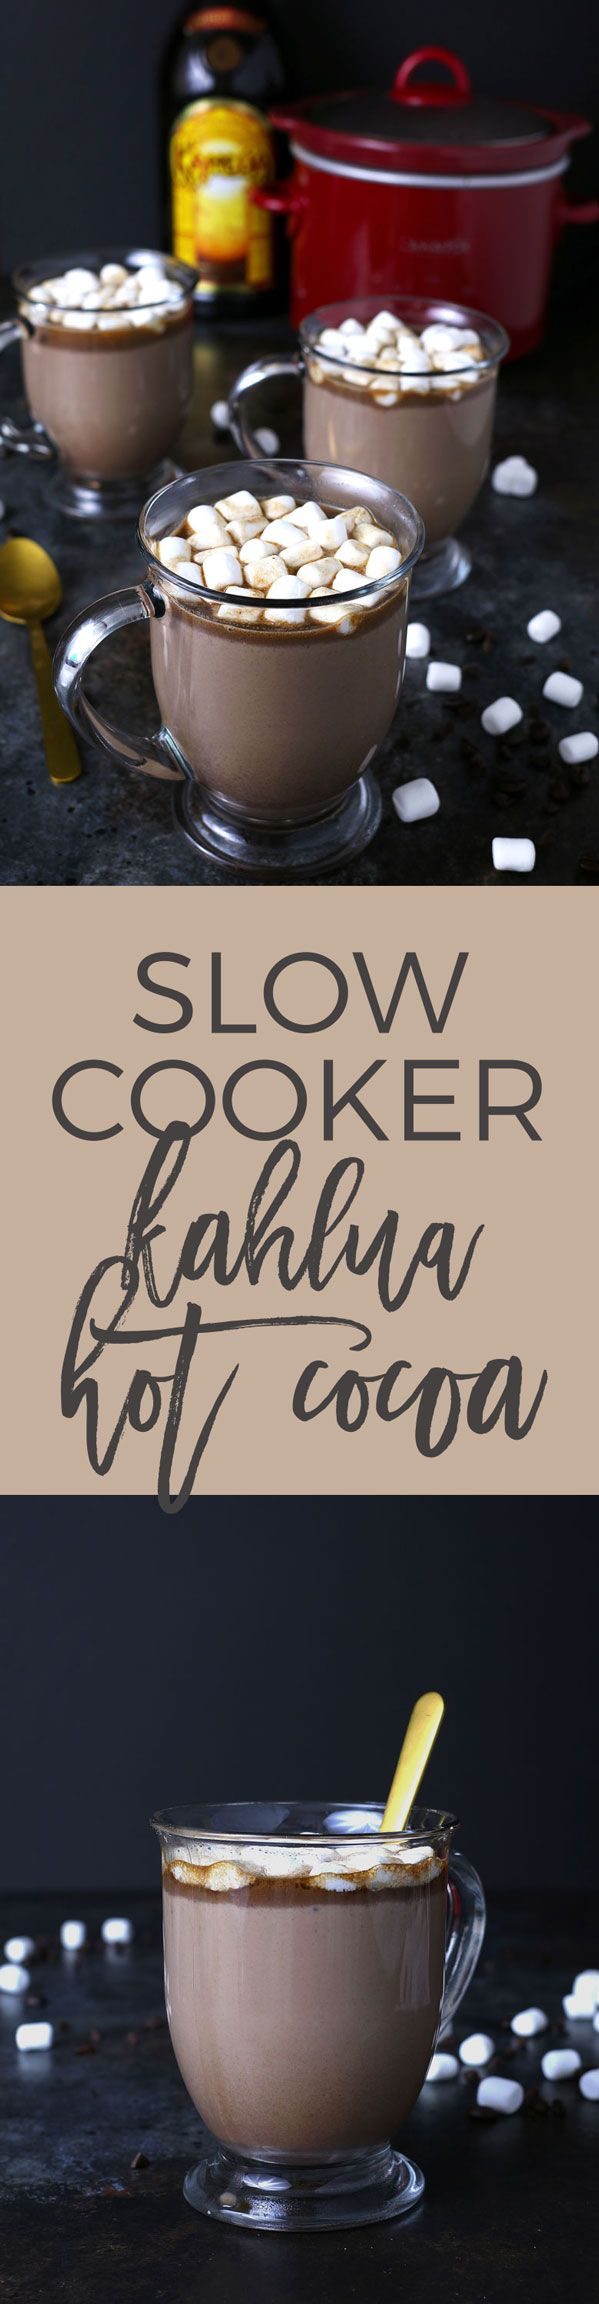 Slow cooker Kahlua hot cocoa warms you up in more ways than one! Add some marshmallows to this hot chocolate and you're all set for chilly winter nights or holiday parties! This is going to become your favorite winter cocktail / dessert combination!   honeyandbirch.com